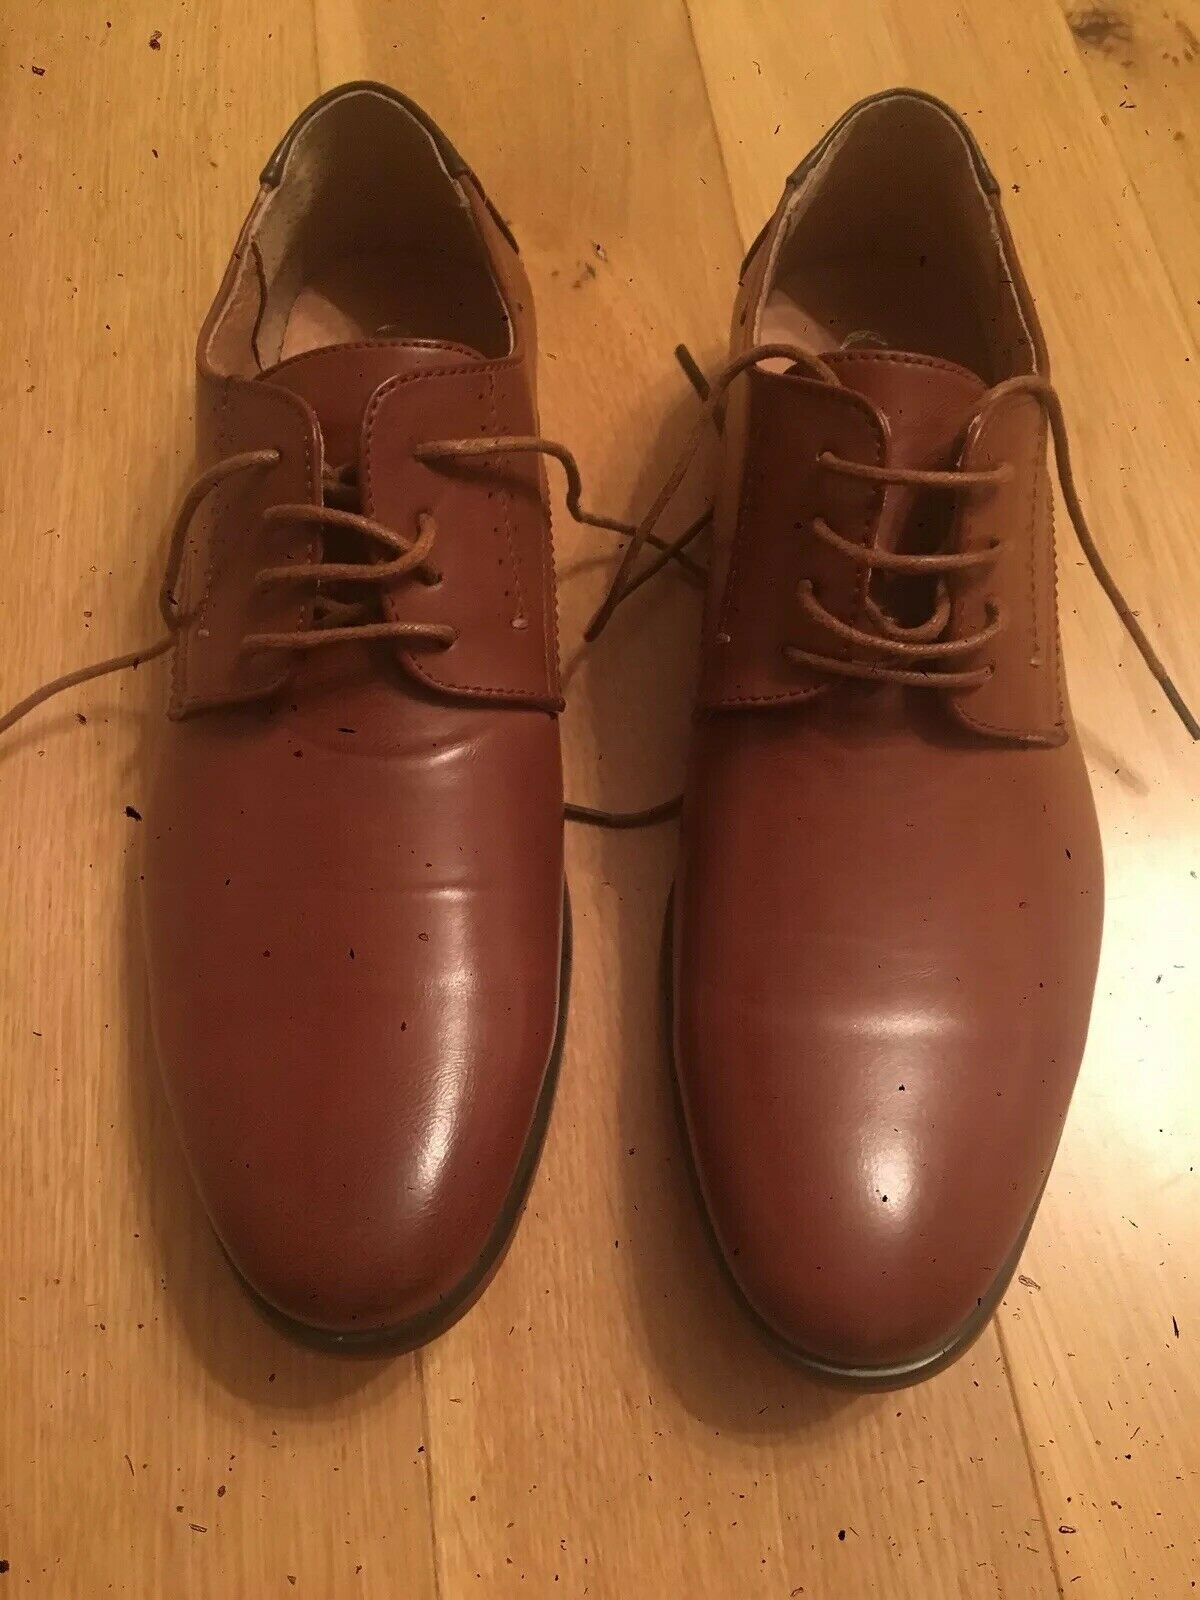 Mens brown leather shoes size 9